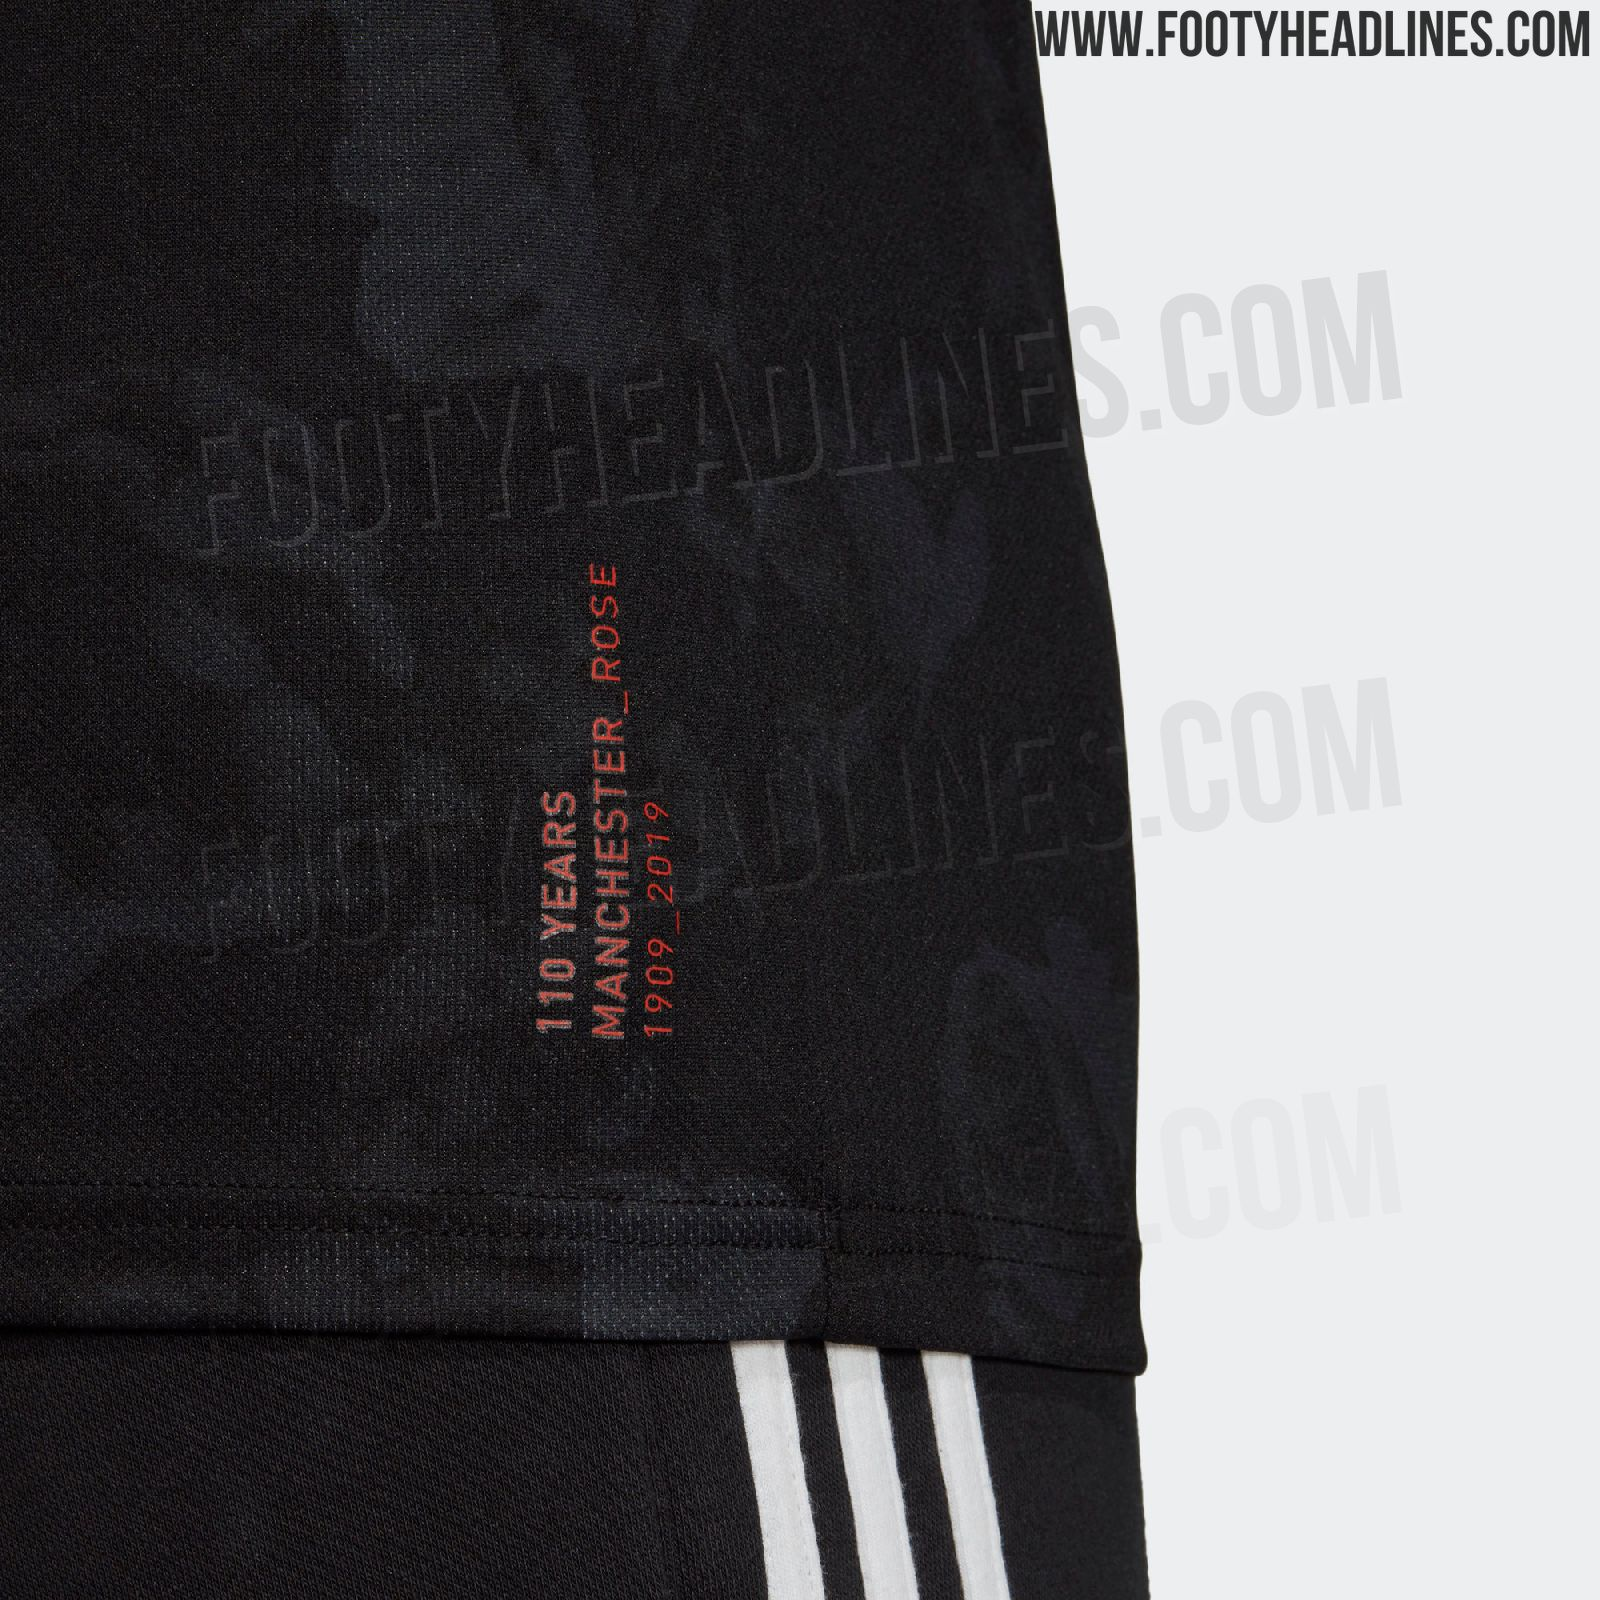 aa323d664 This is further highlighted by an inscription on the bottom left side of  the Manchester United 19-20 third shirt